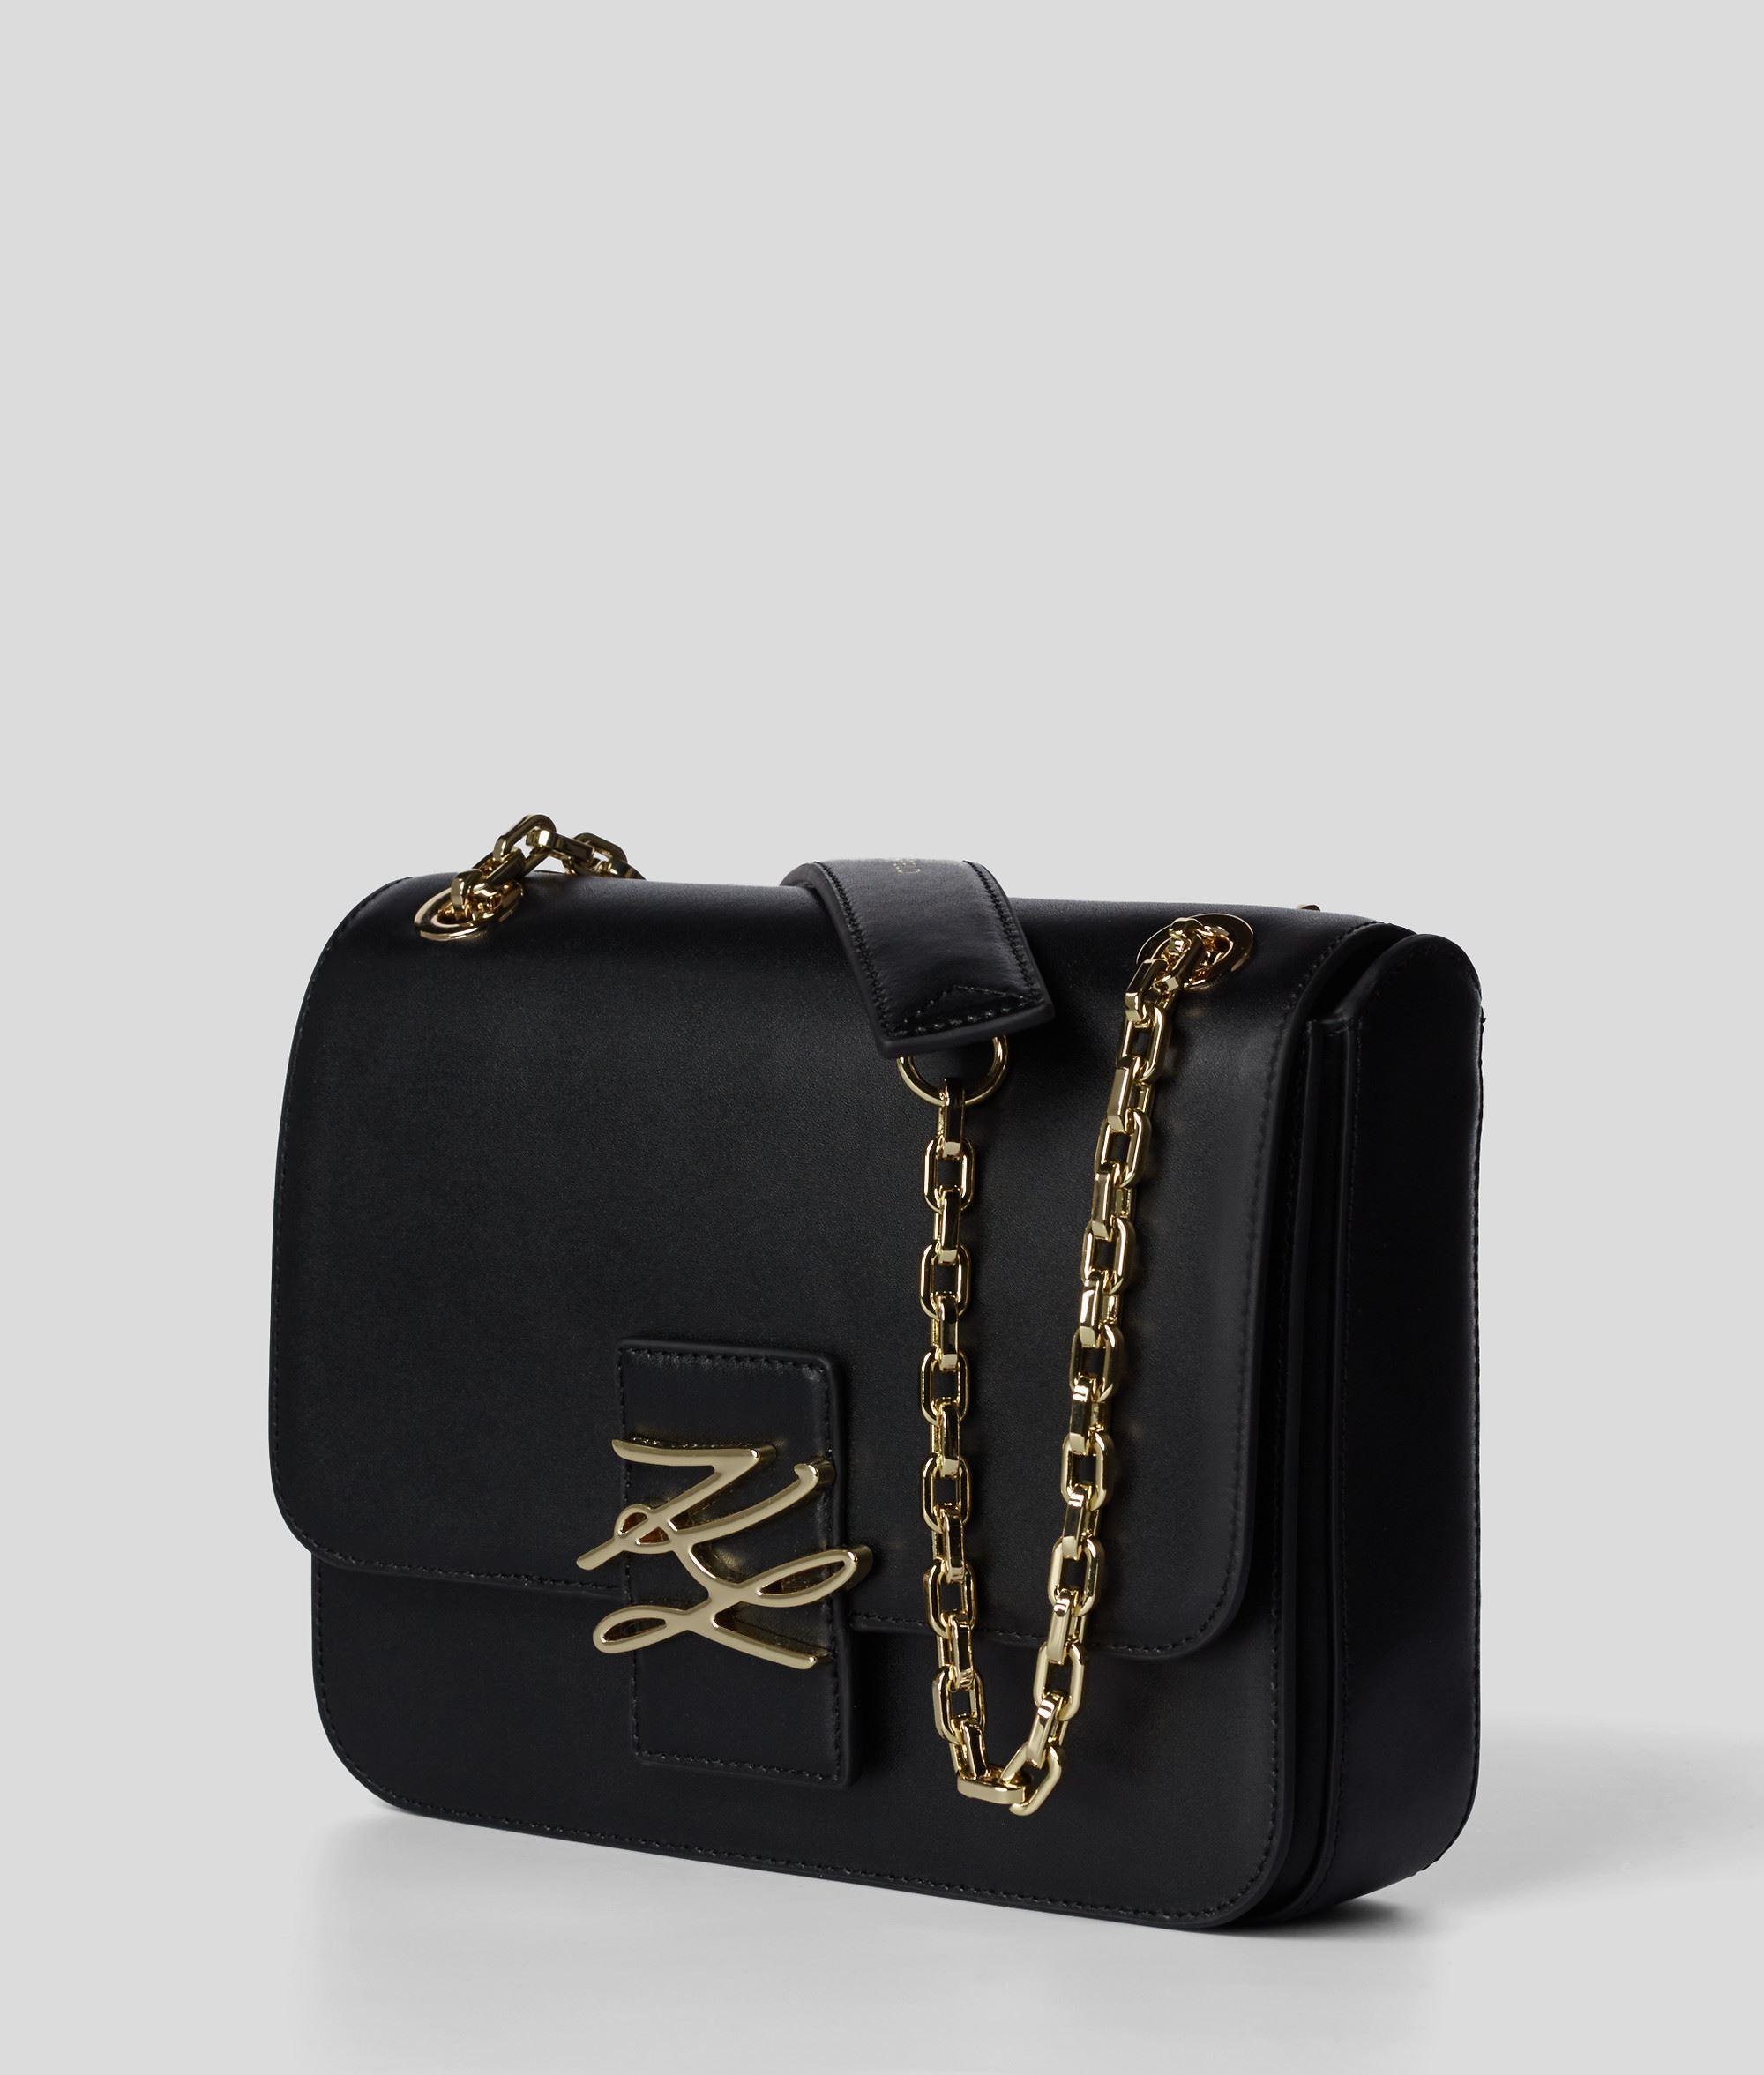 KARL LAGERFELD | Bags | 205W3181.21997/A997